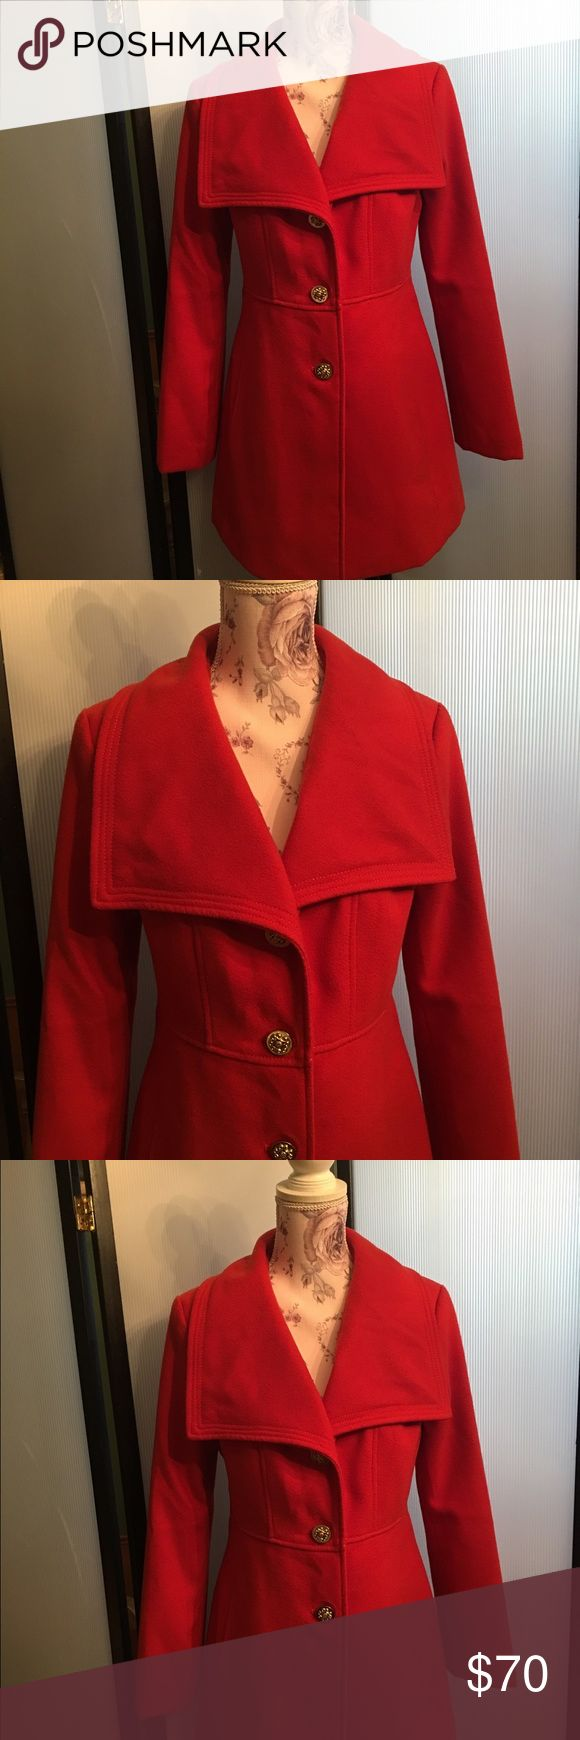 NWOT Red Jessica Simpson Shawl Collar Pea Coat Red Jessica Simpson Shawl Collar Pea Coat new without tag, does come with extra button attached to tag. Jessica Simpson Jackets & Coats Pea Coats